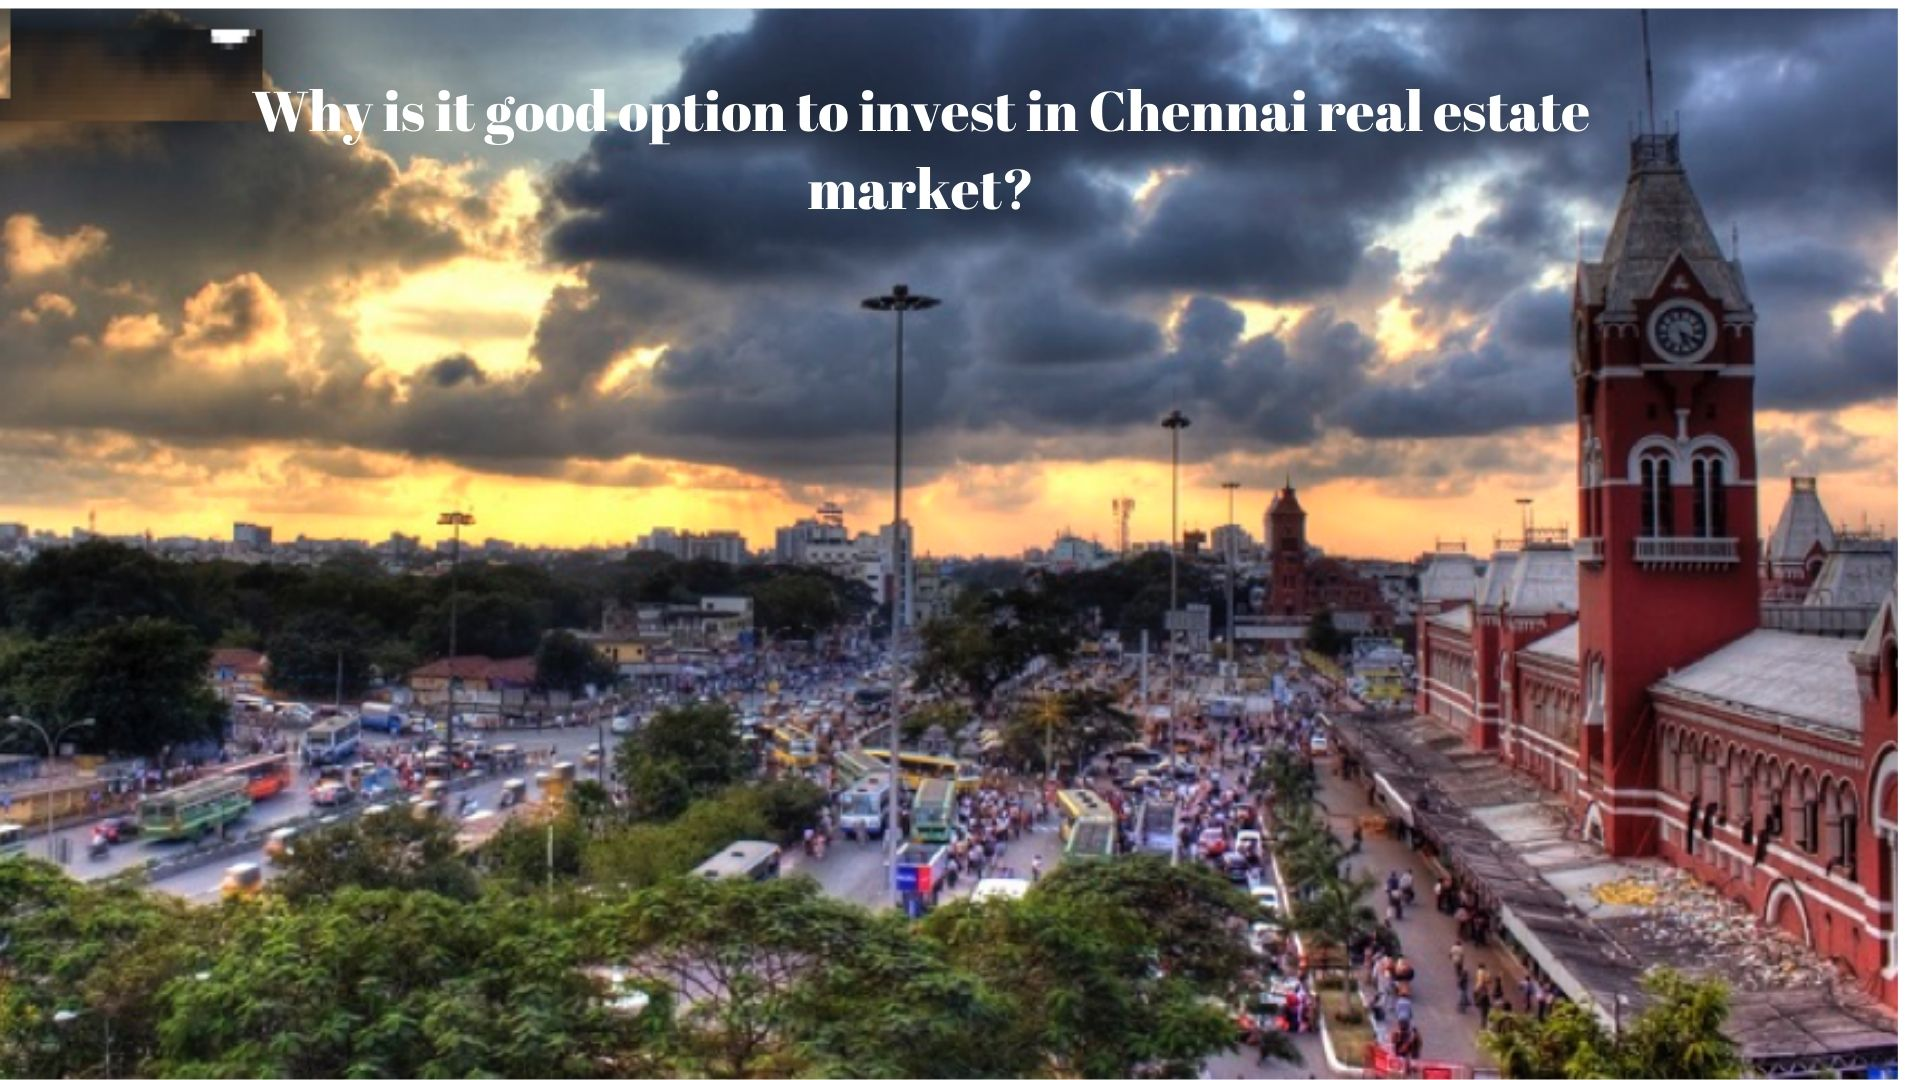 Why is it good option to invest in Chennai real estate market?